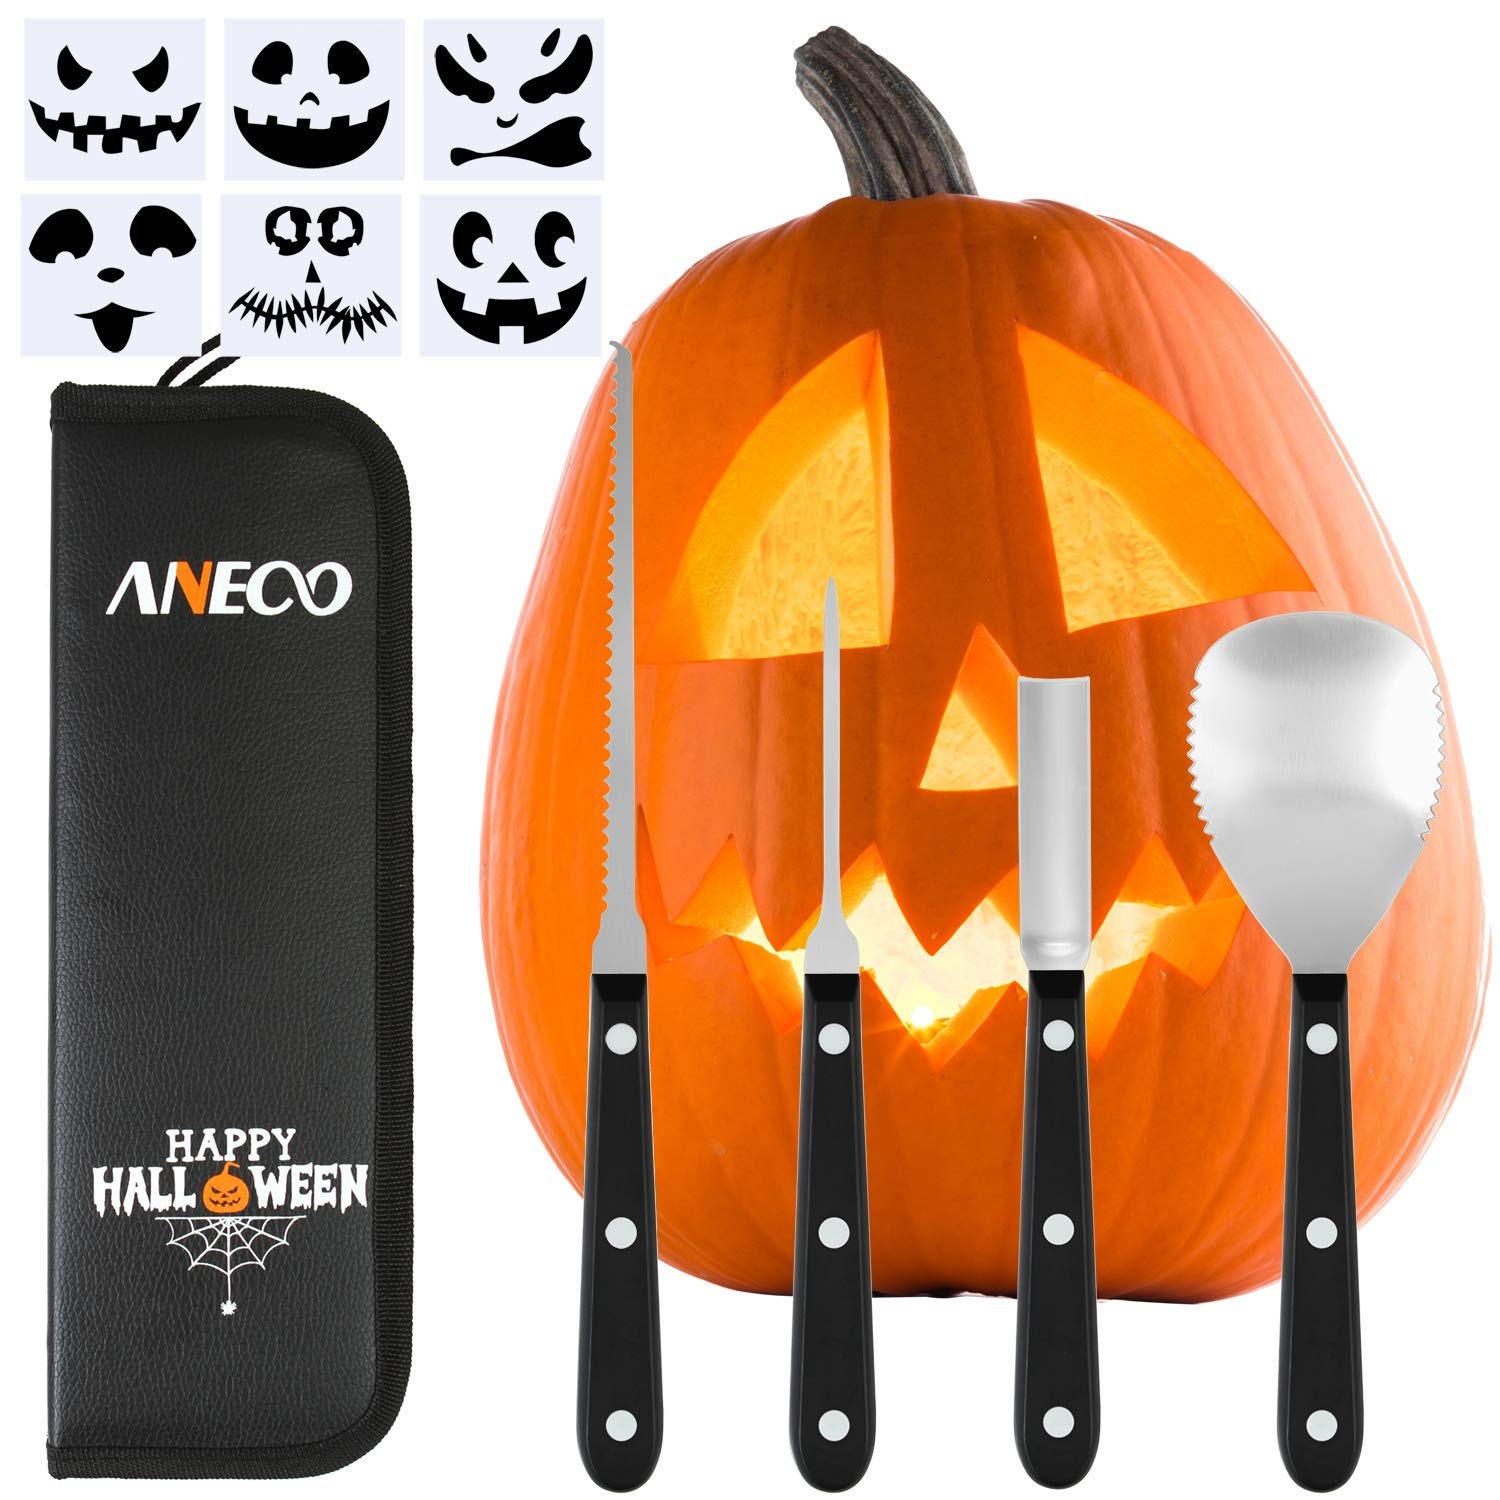 Aneco Professional Halloween Pumpkin Carving Tool Kit Stainless Steel Pumpkin Carving Tool for Halloween Jack-O-Lanterns with 6 Pumpkin Carved Stickers and Storage Bag by Aneco